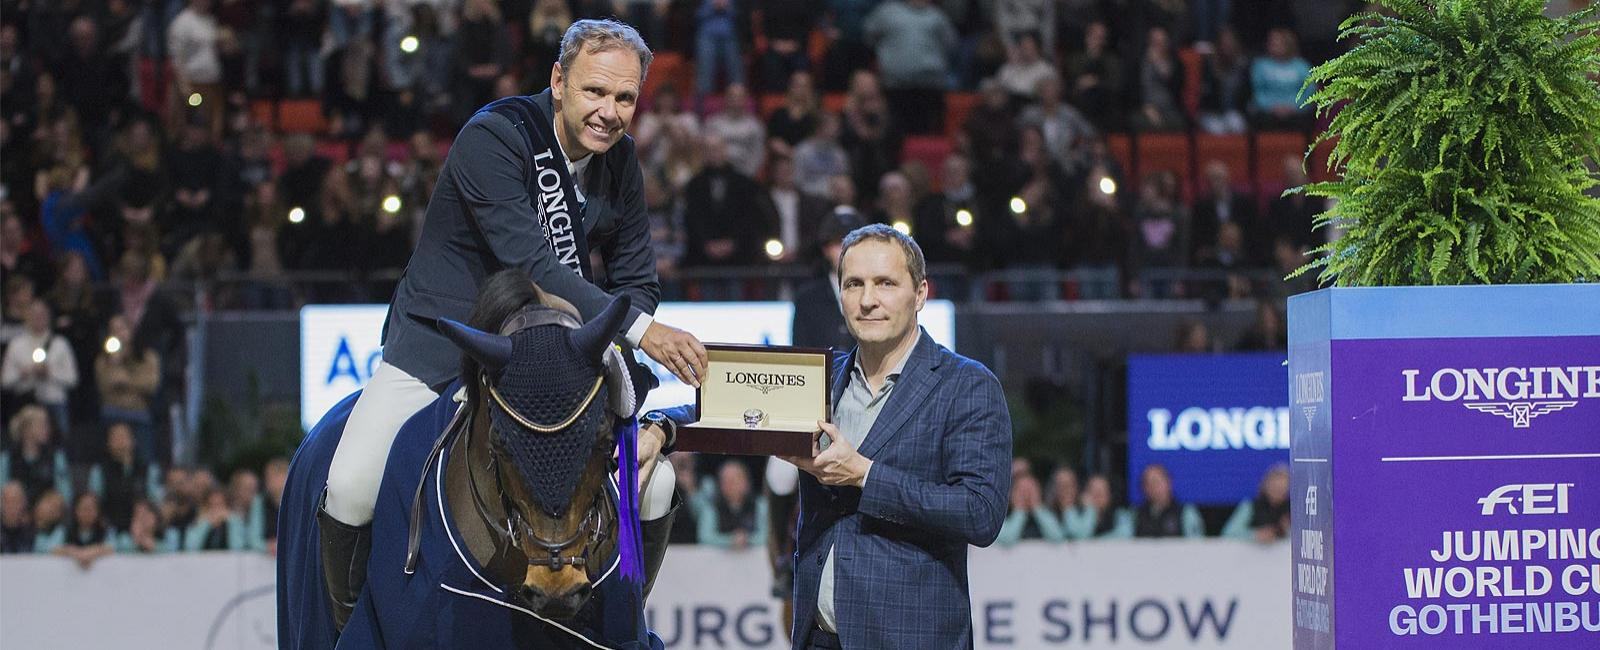 Geir Gulliksen; Vdl Groep Quatro; victoire; Longines FEI Jumping World Cup Western European League